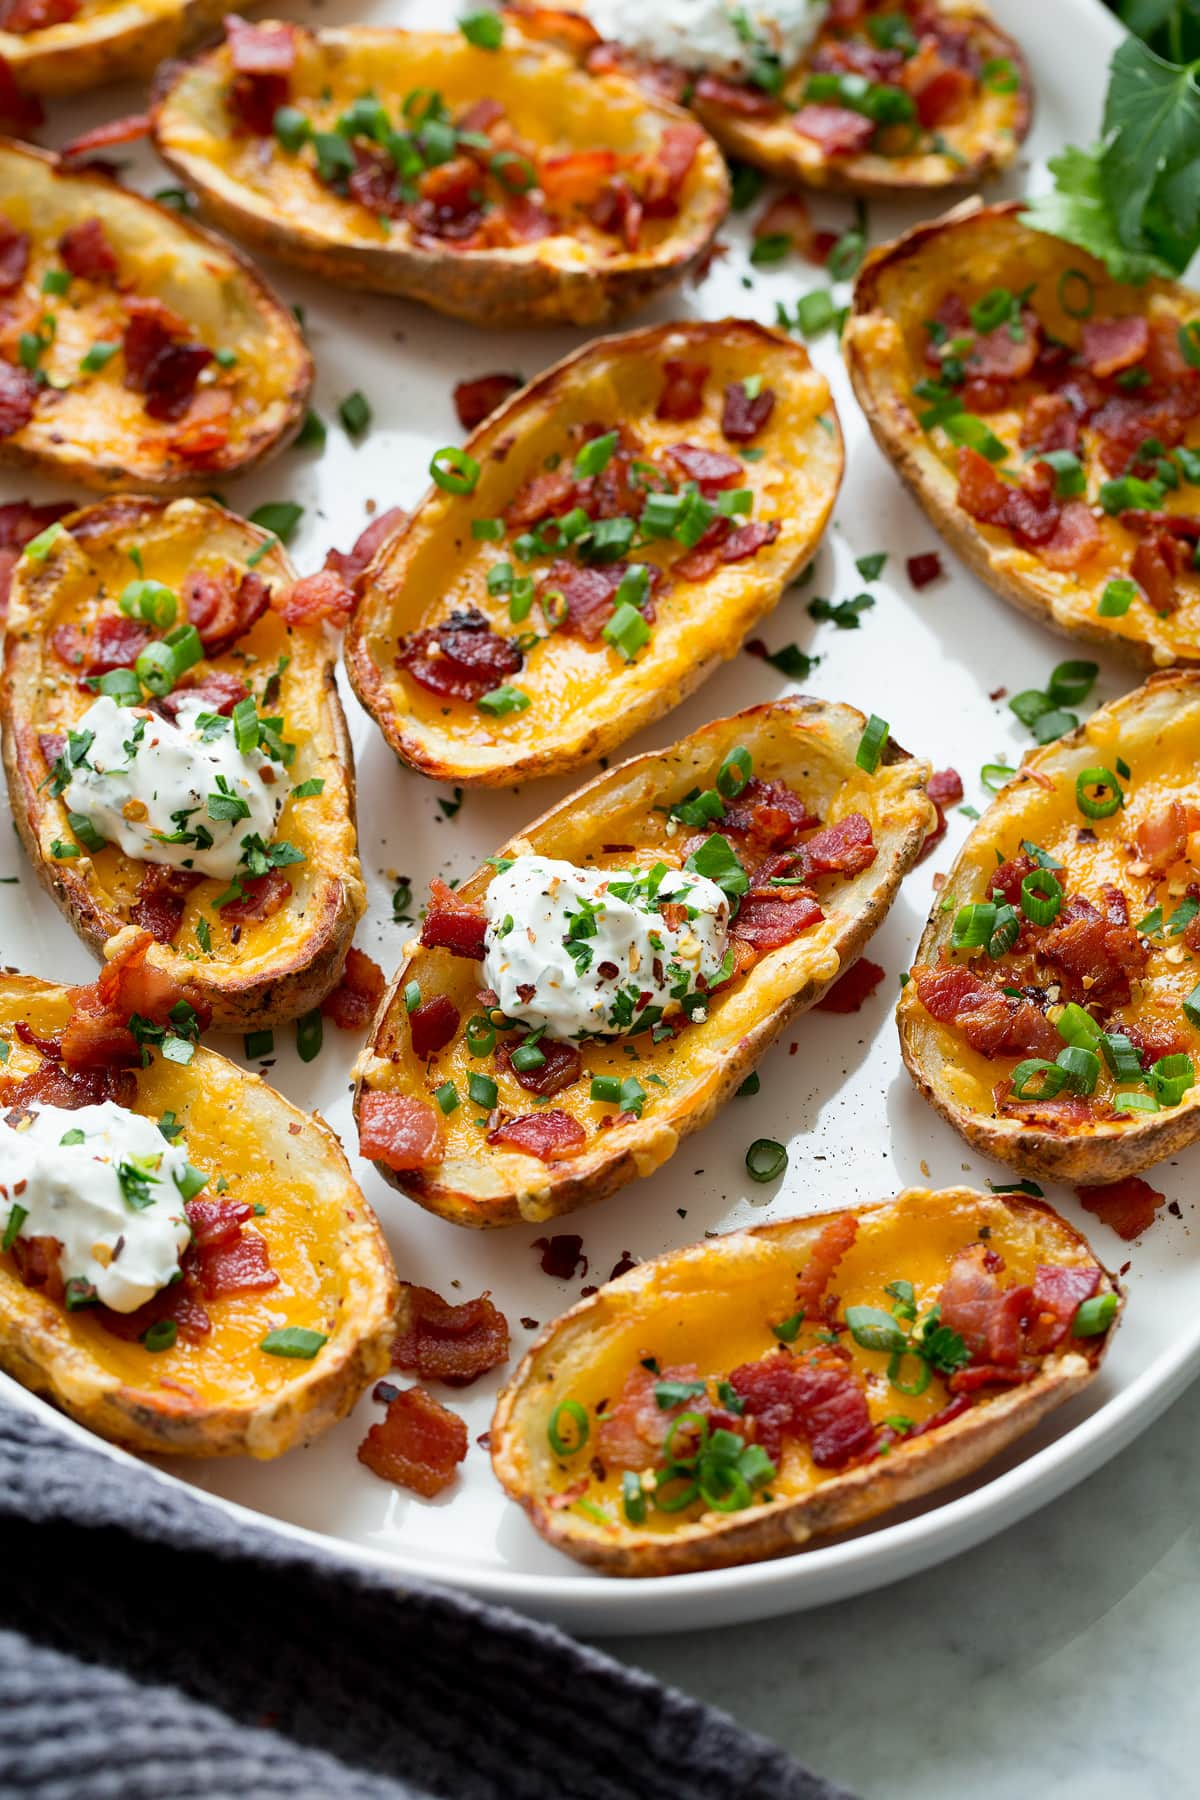 Potato skins shown from a side angle on a large serving platter.